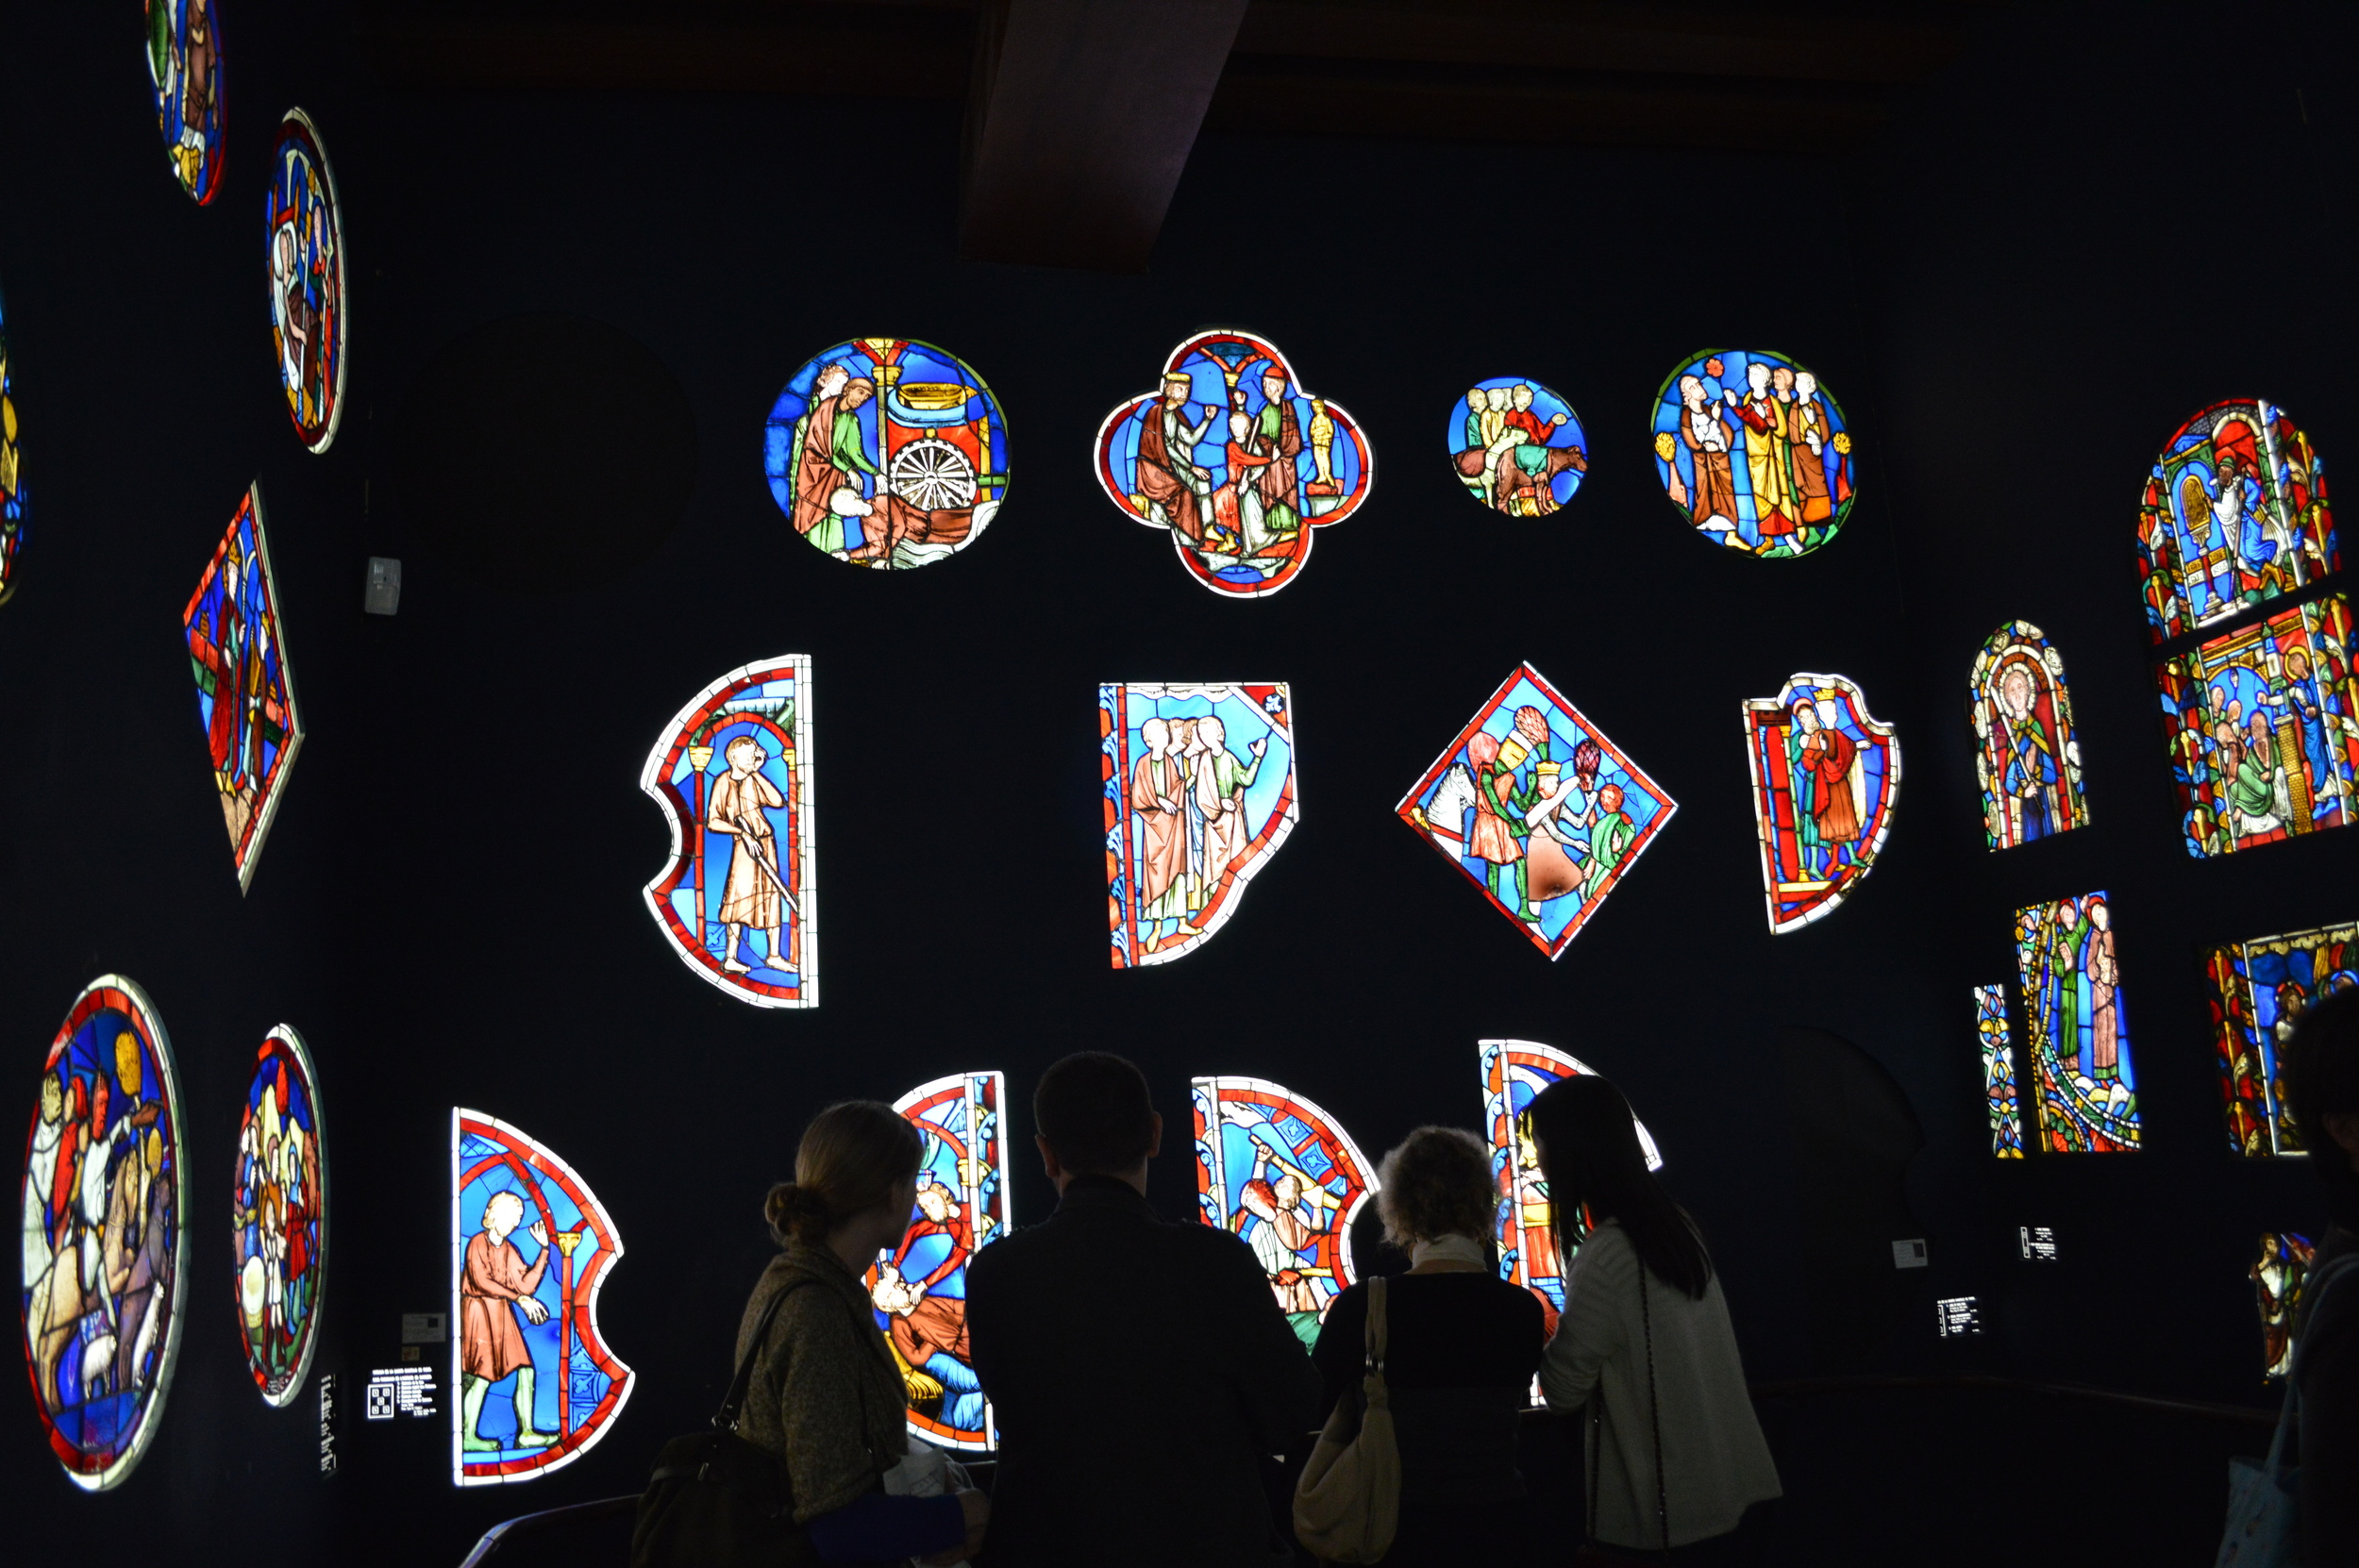 Musée de Cluny, Paris, stained glass